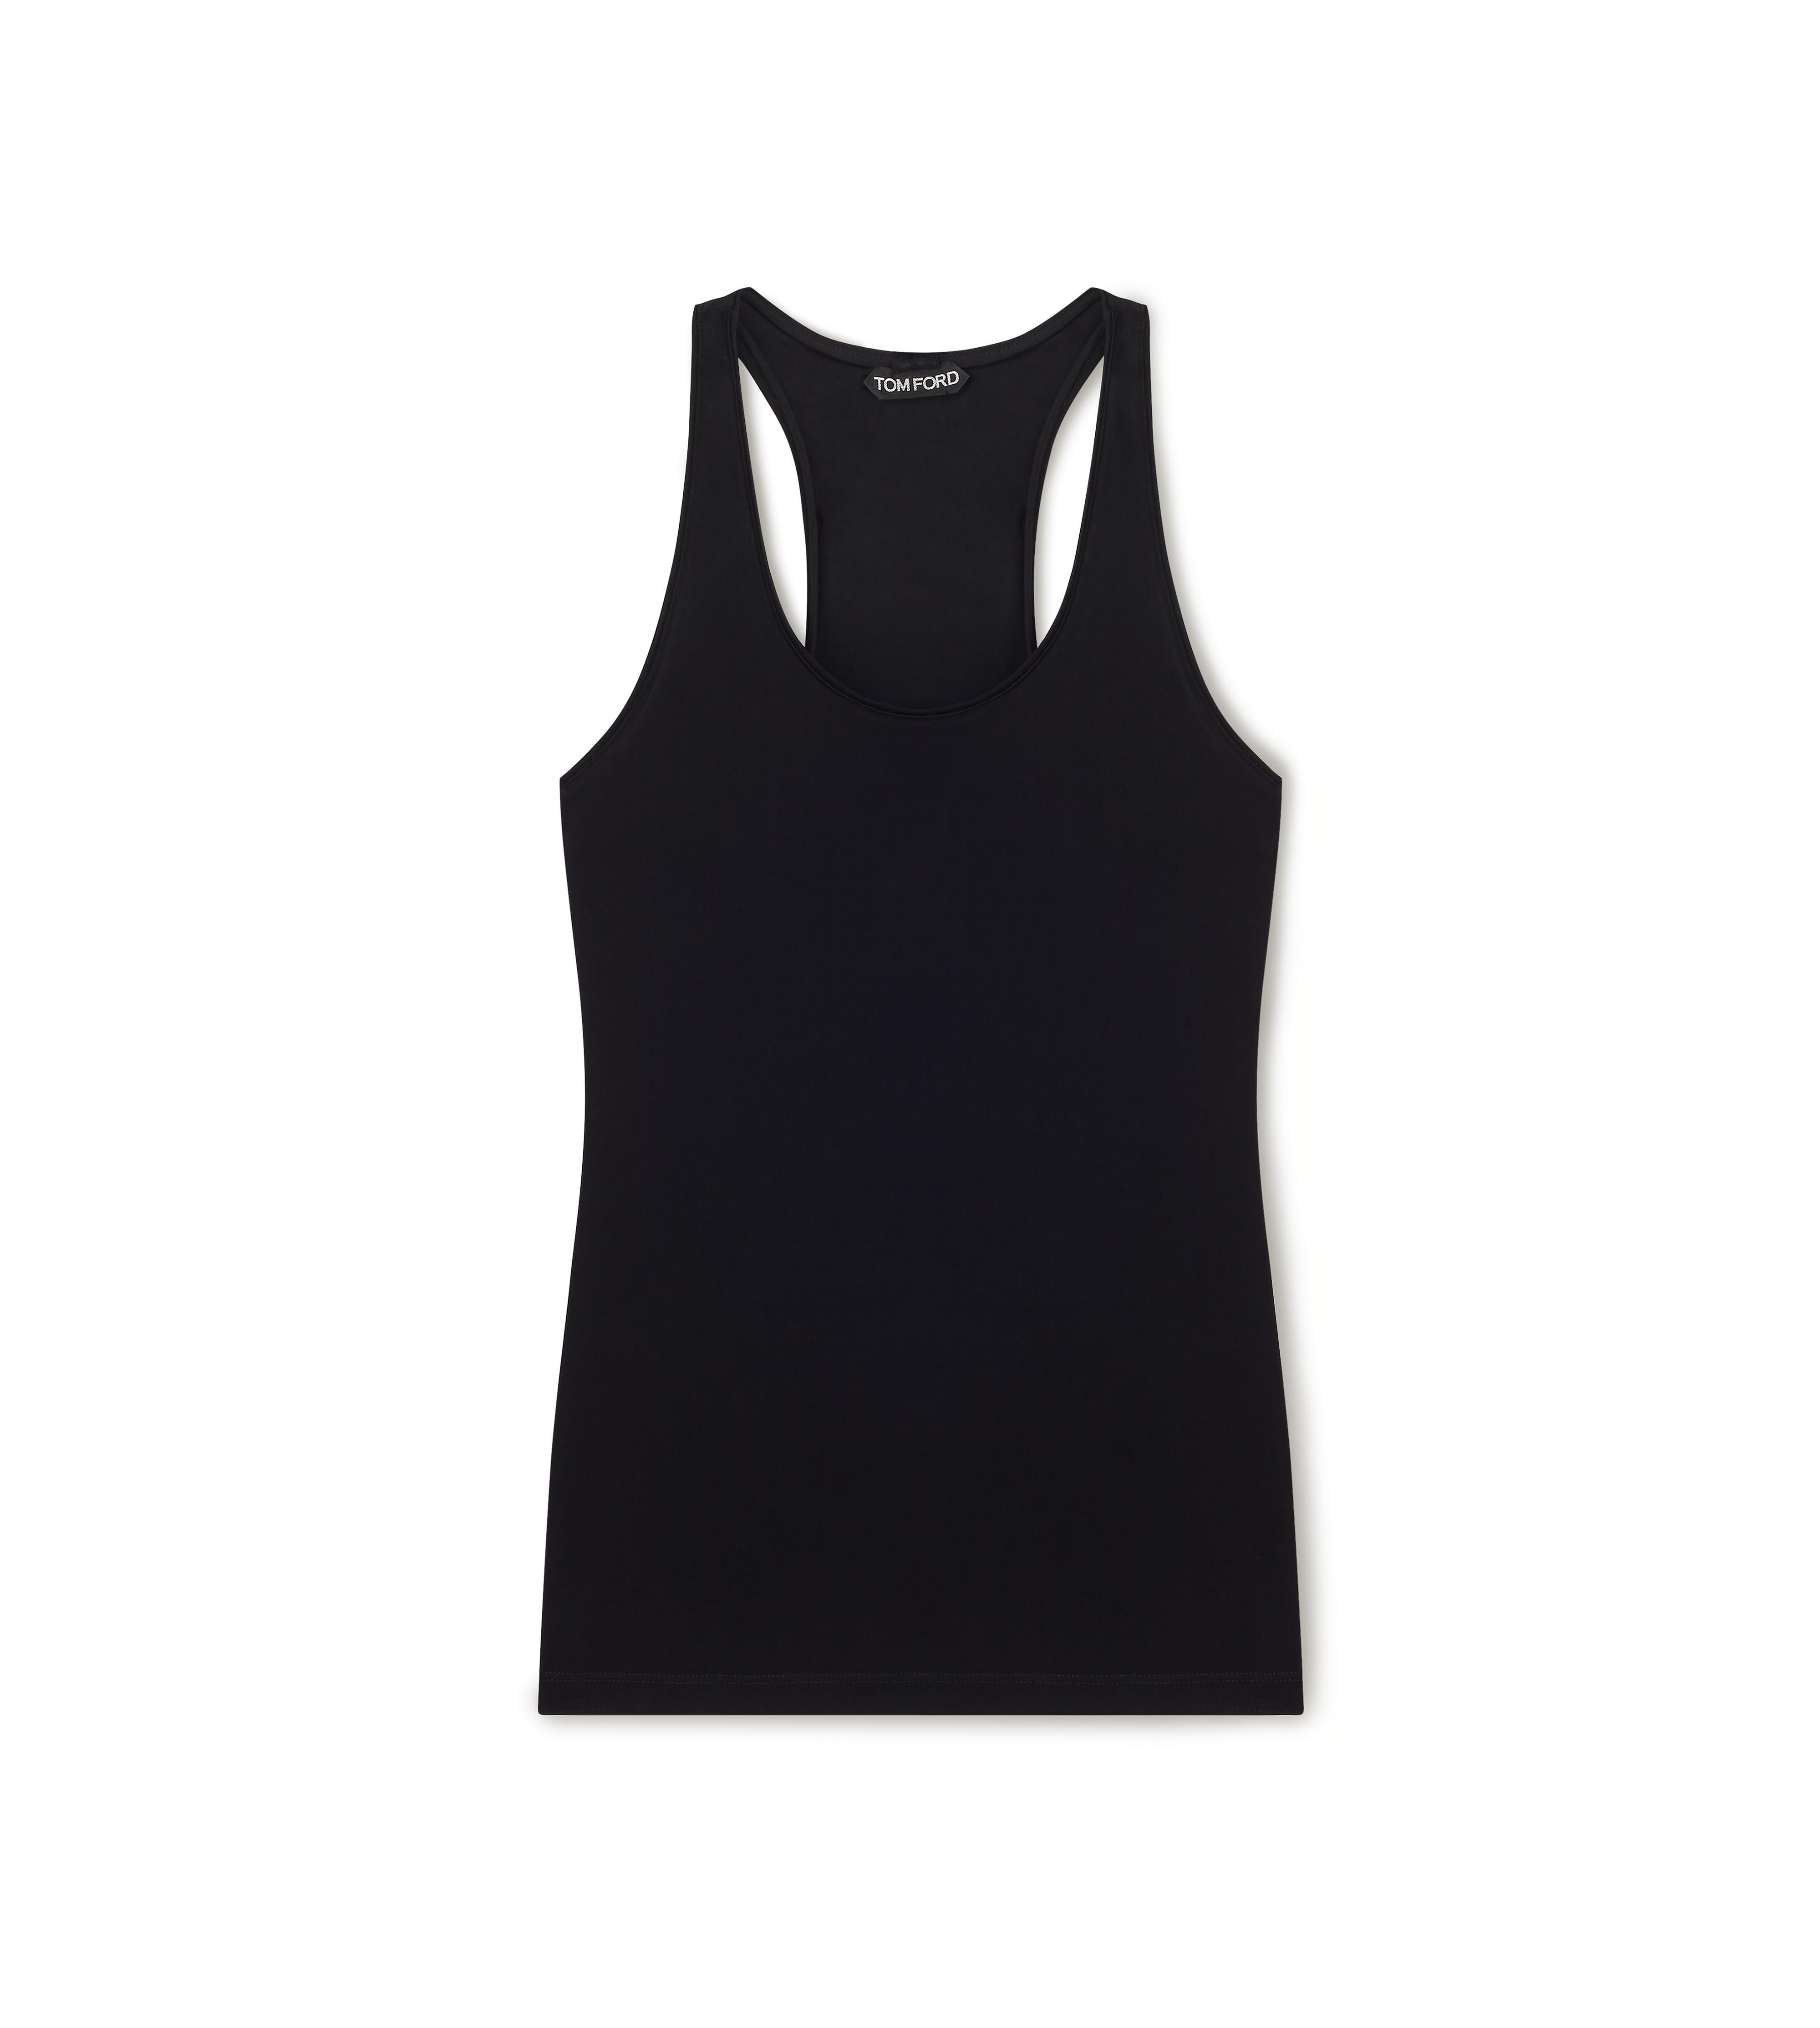 SCOOP NECK TANK TOP WITH PADLOCK ON LEATHER NECKLACE C thumbnail